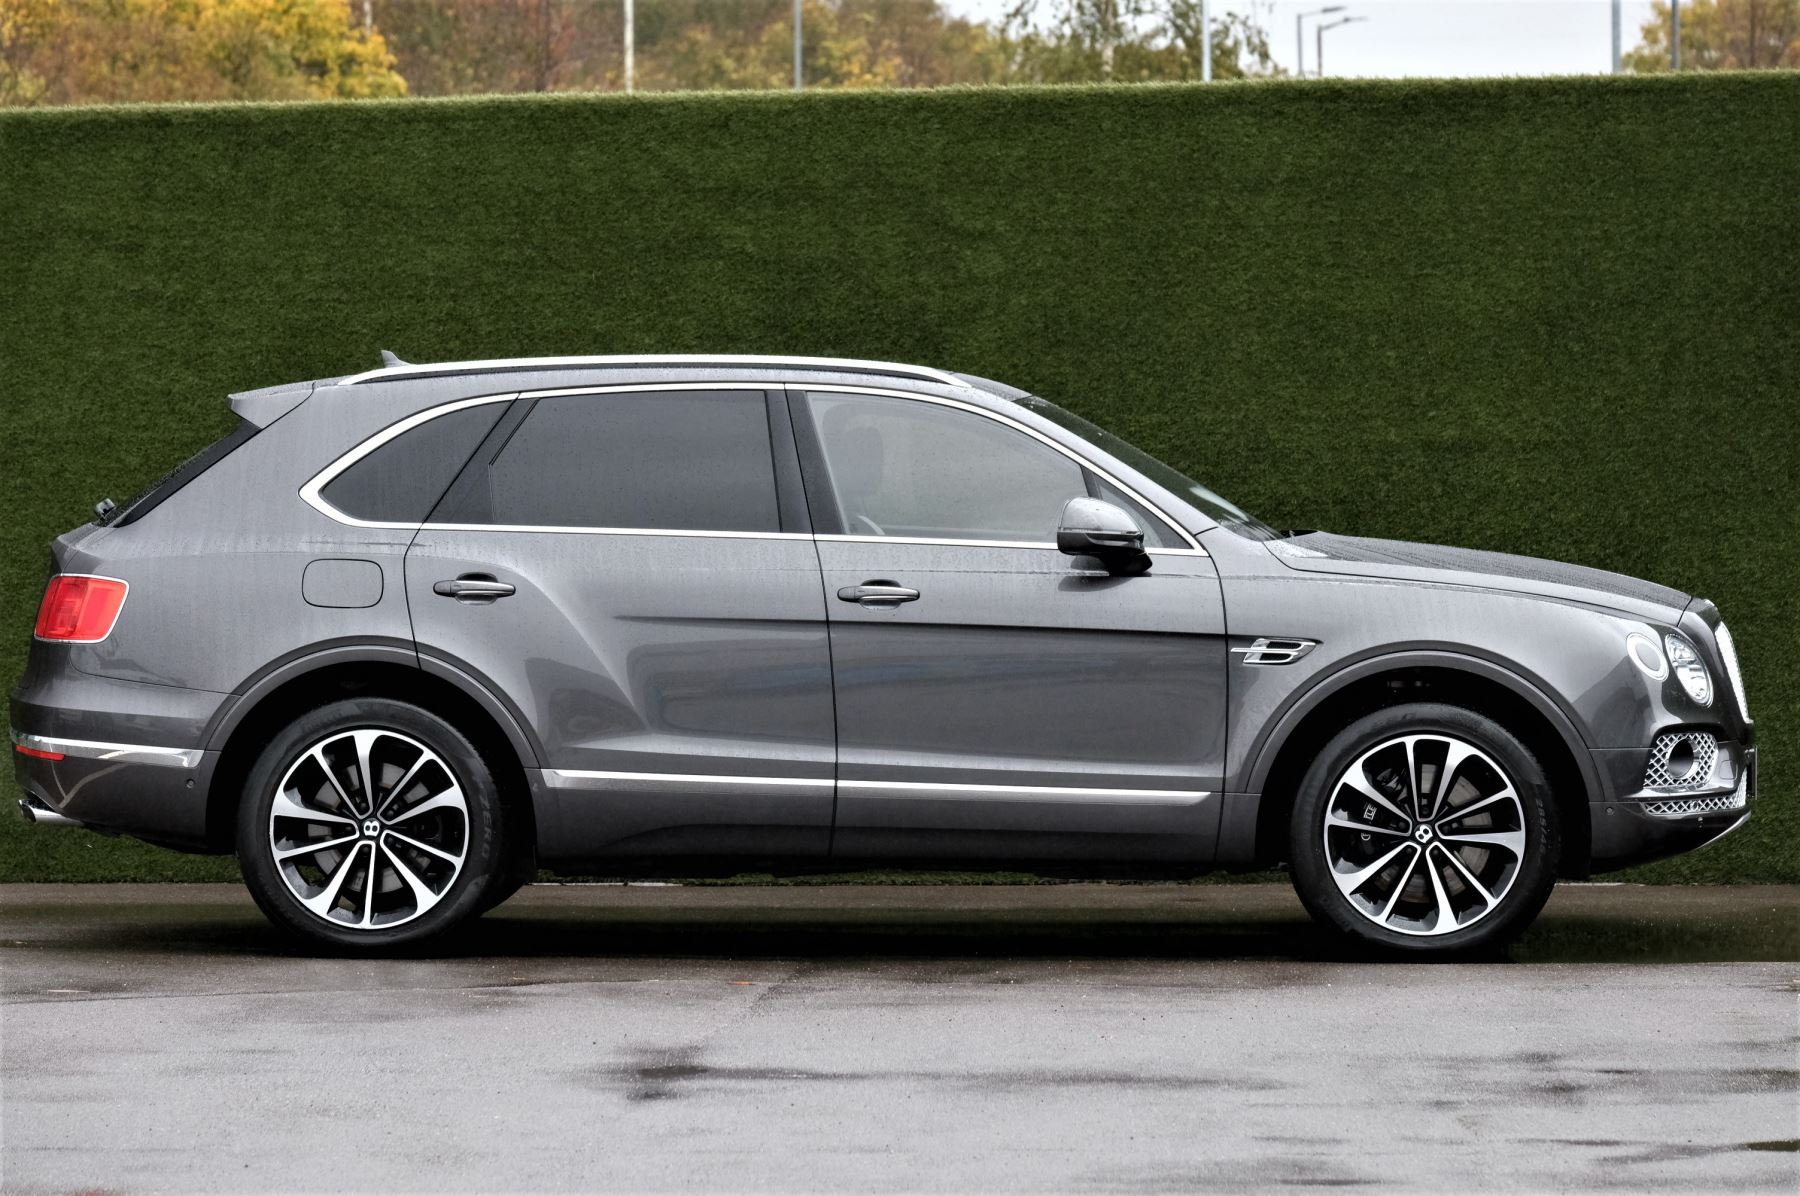 Bentley Bentayga 0.0 4.0 V8 5dr - Mulliner Driving Specification